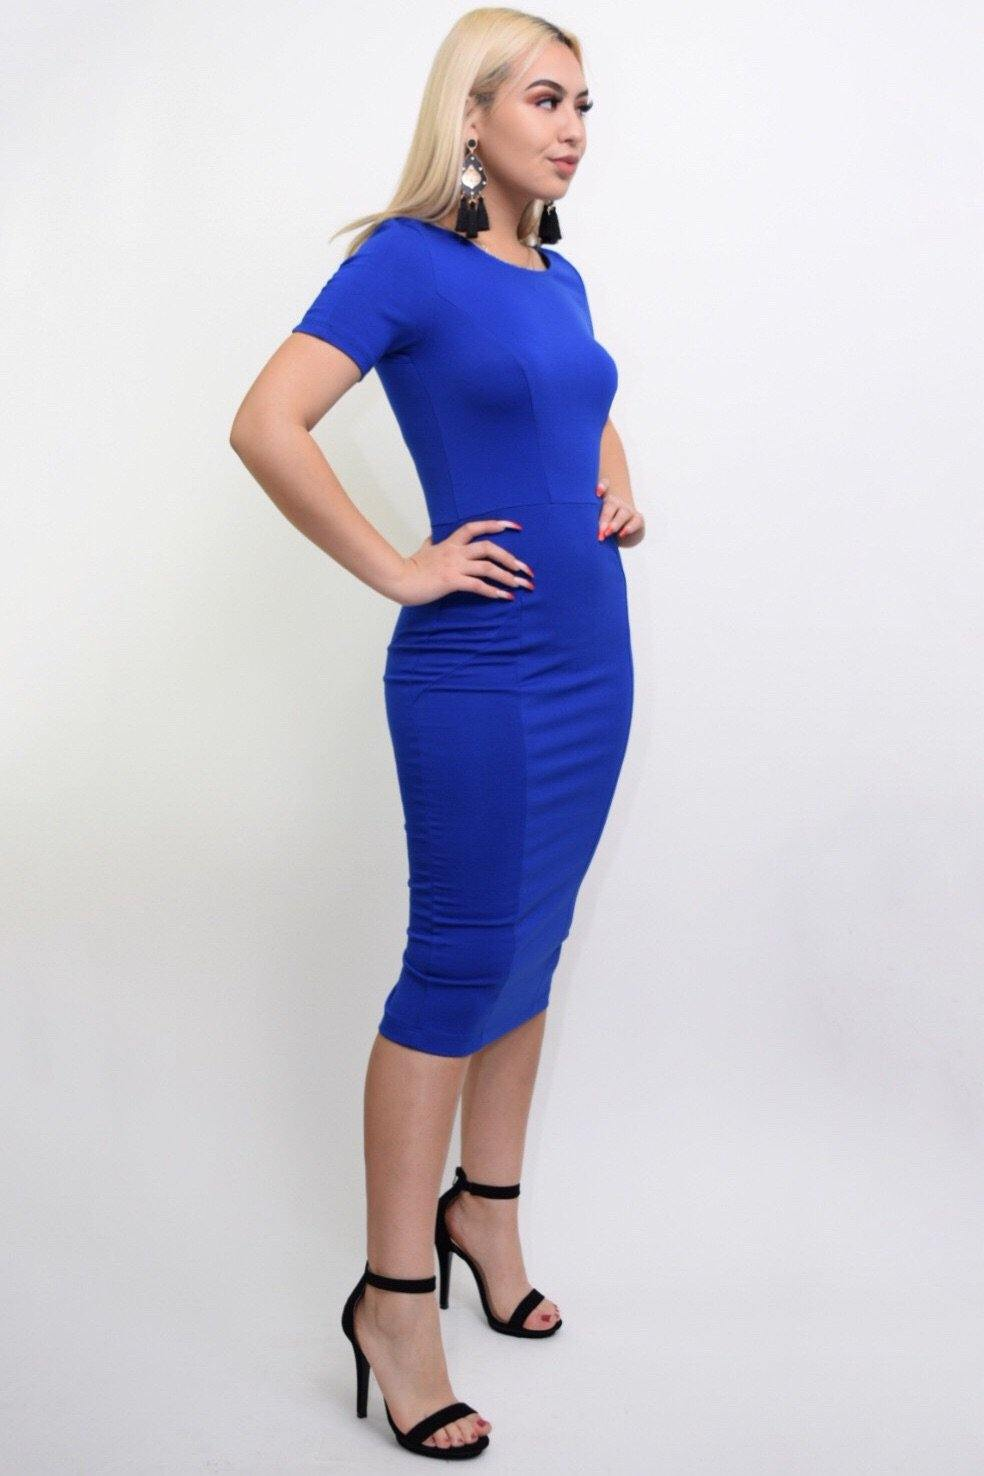 Jarrel blue bodycon middy dress